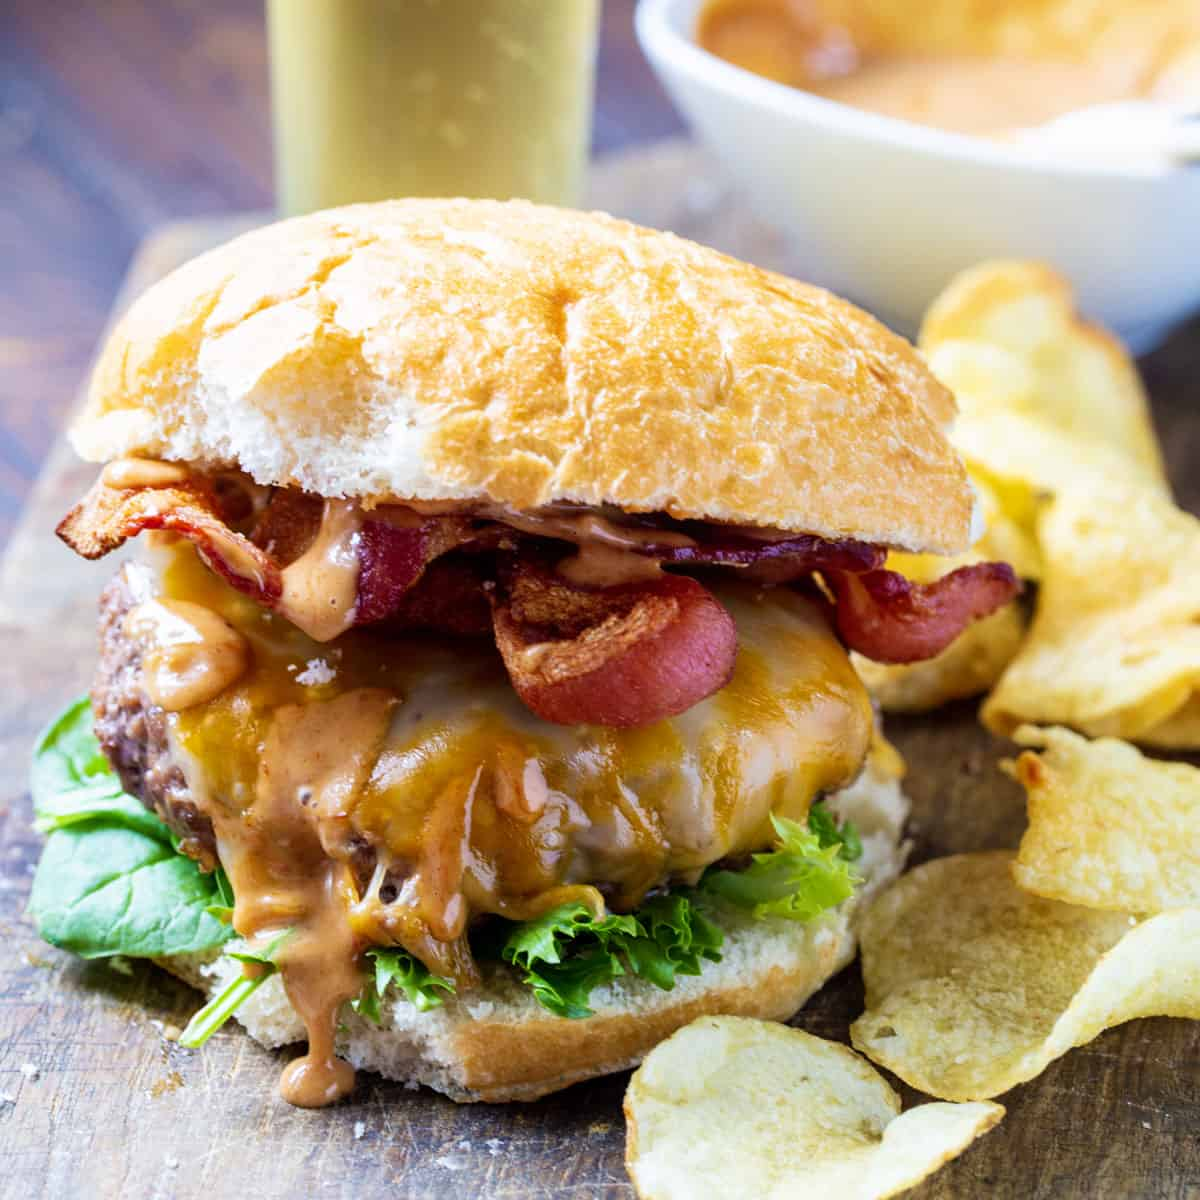 Burger on a bun surrounded by chips.